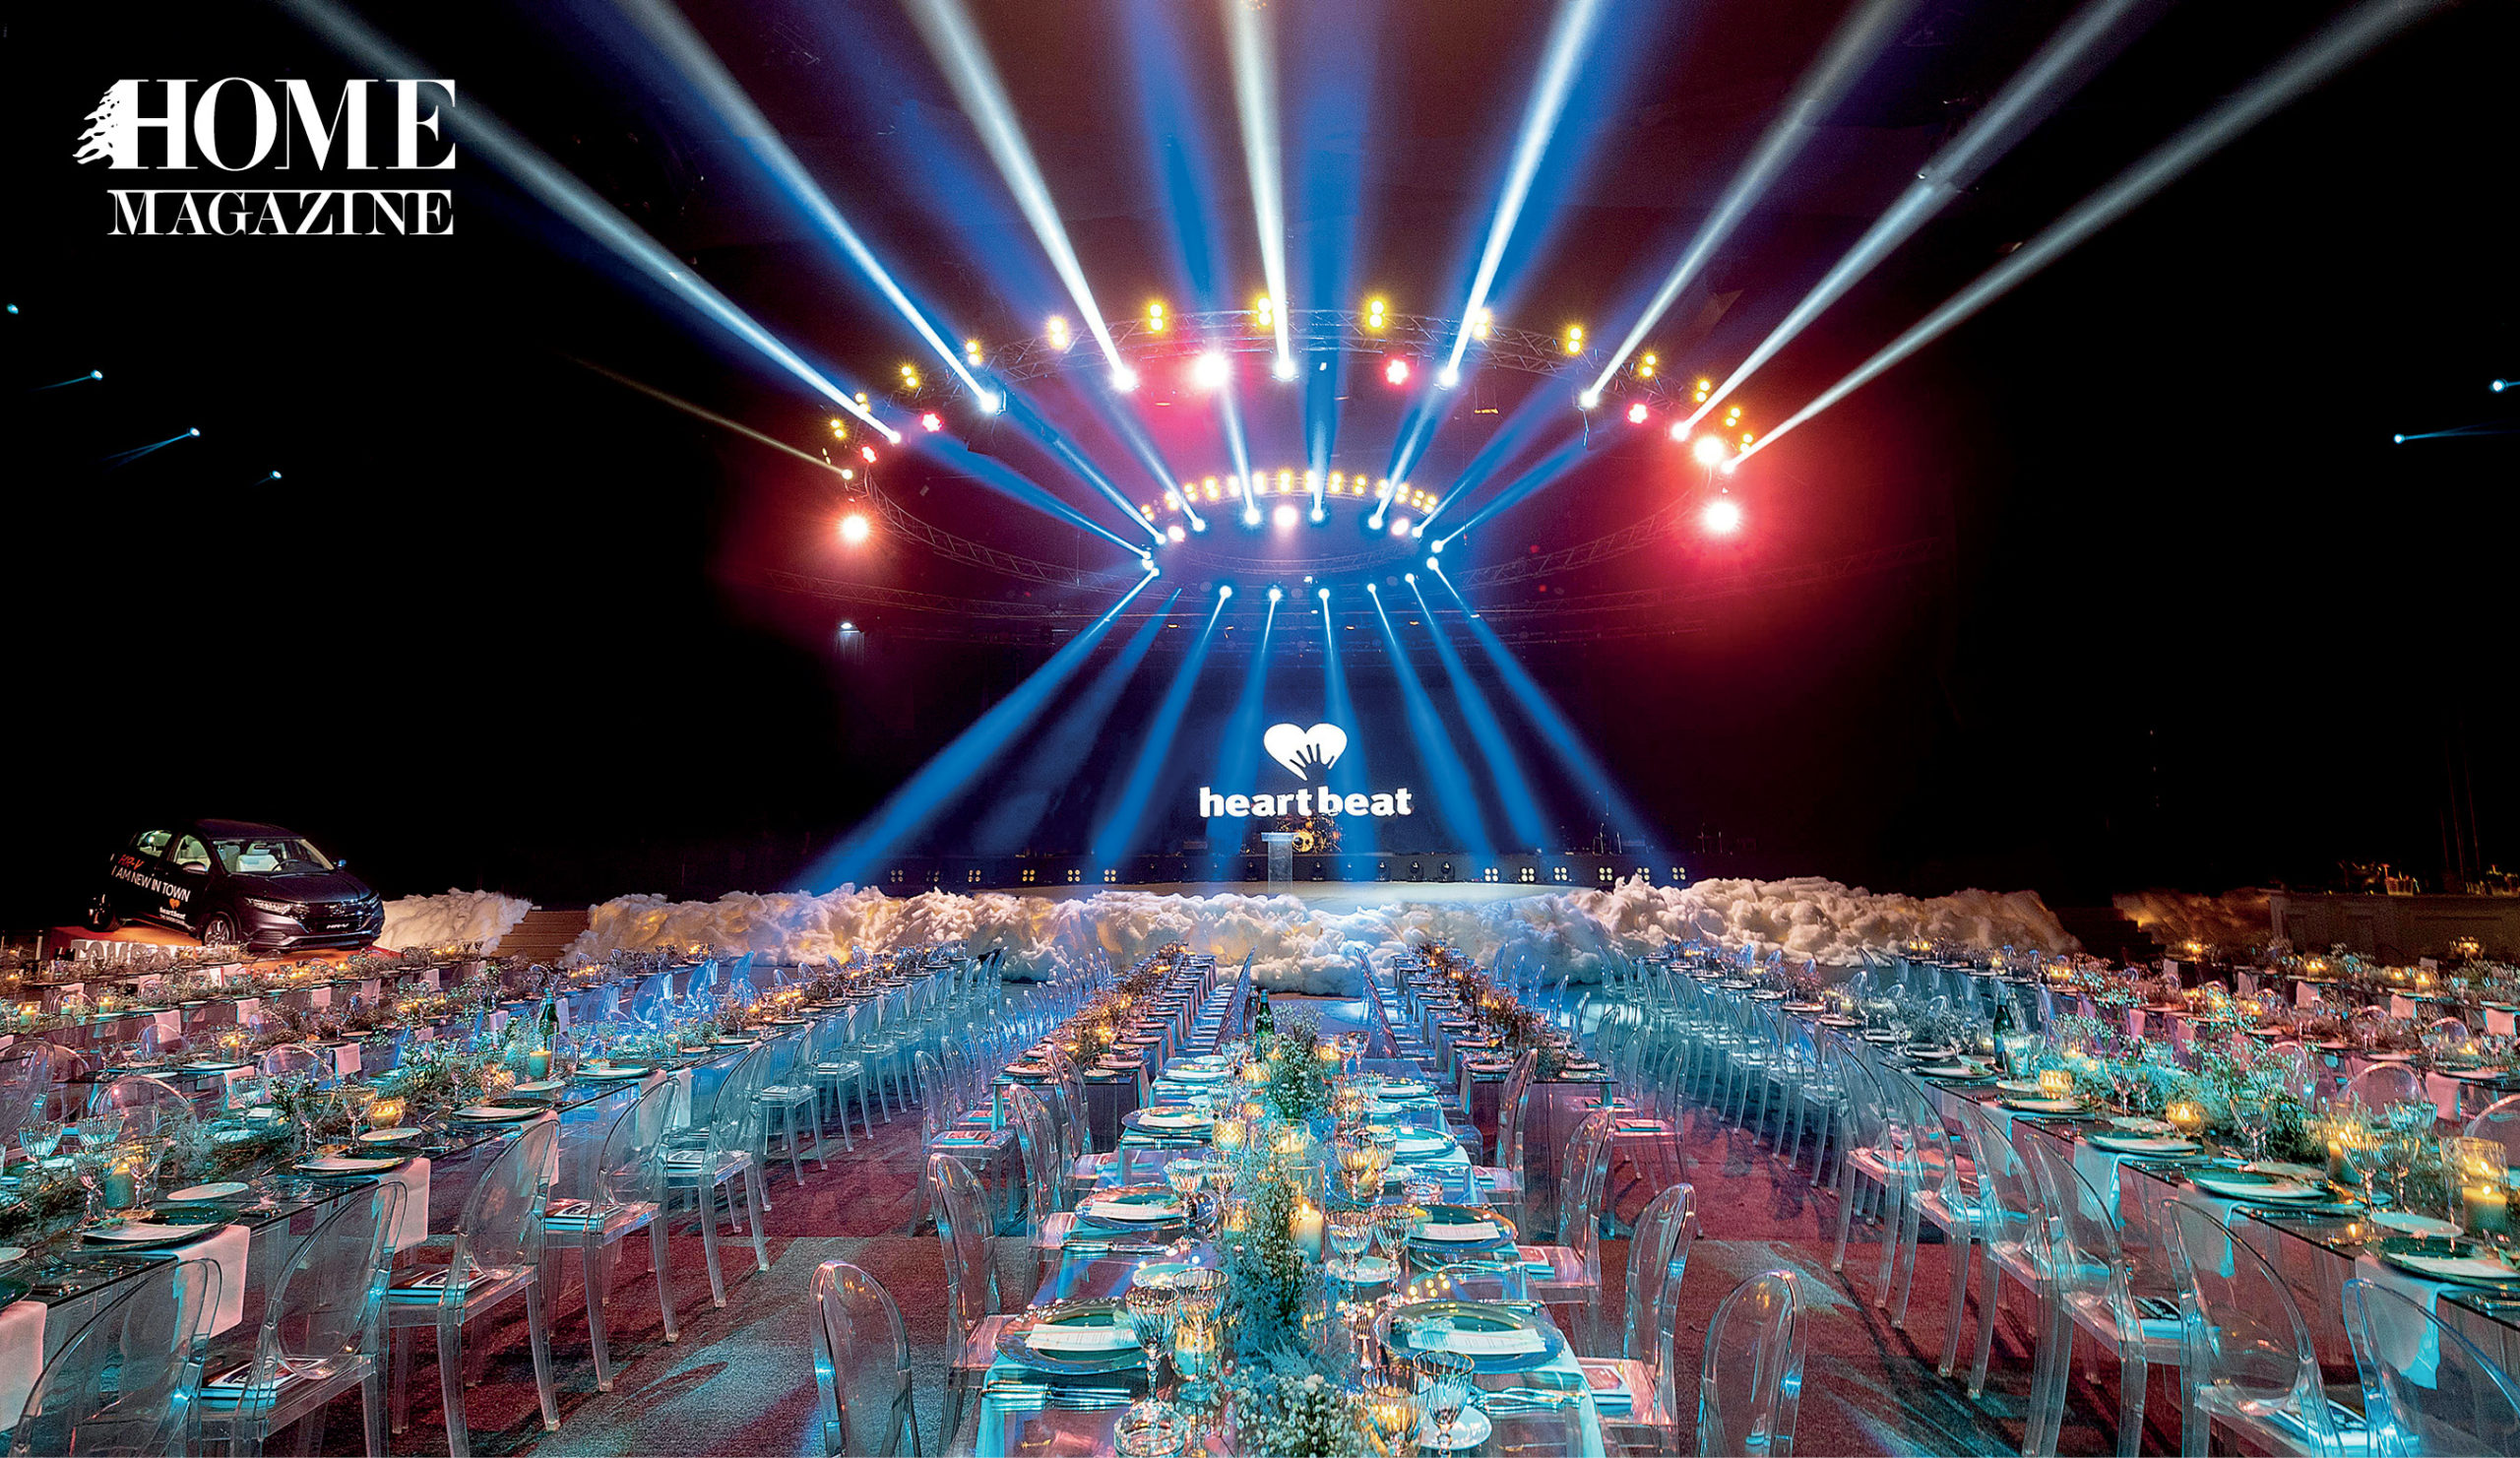 Glass table and chair setup with stage and lightings